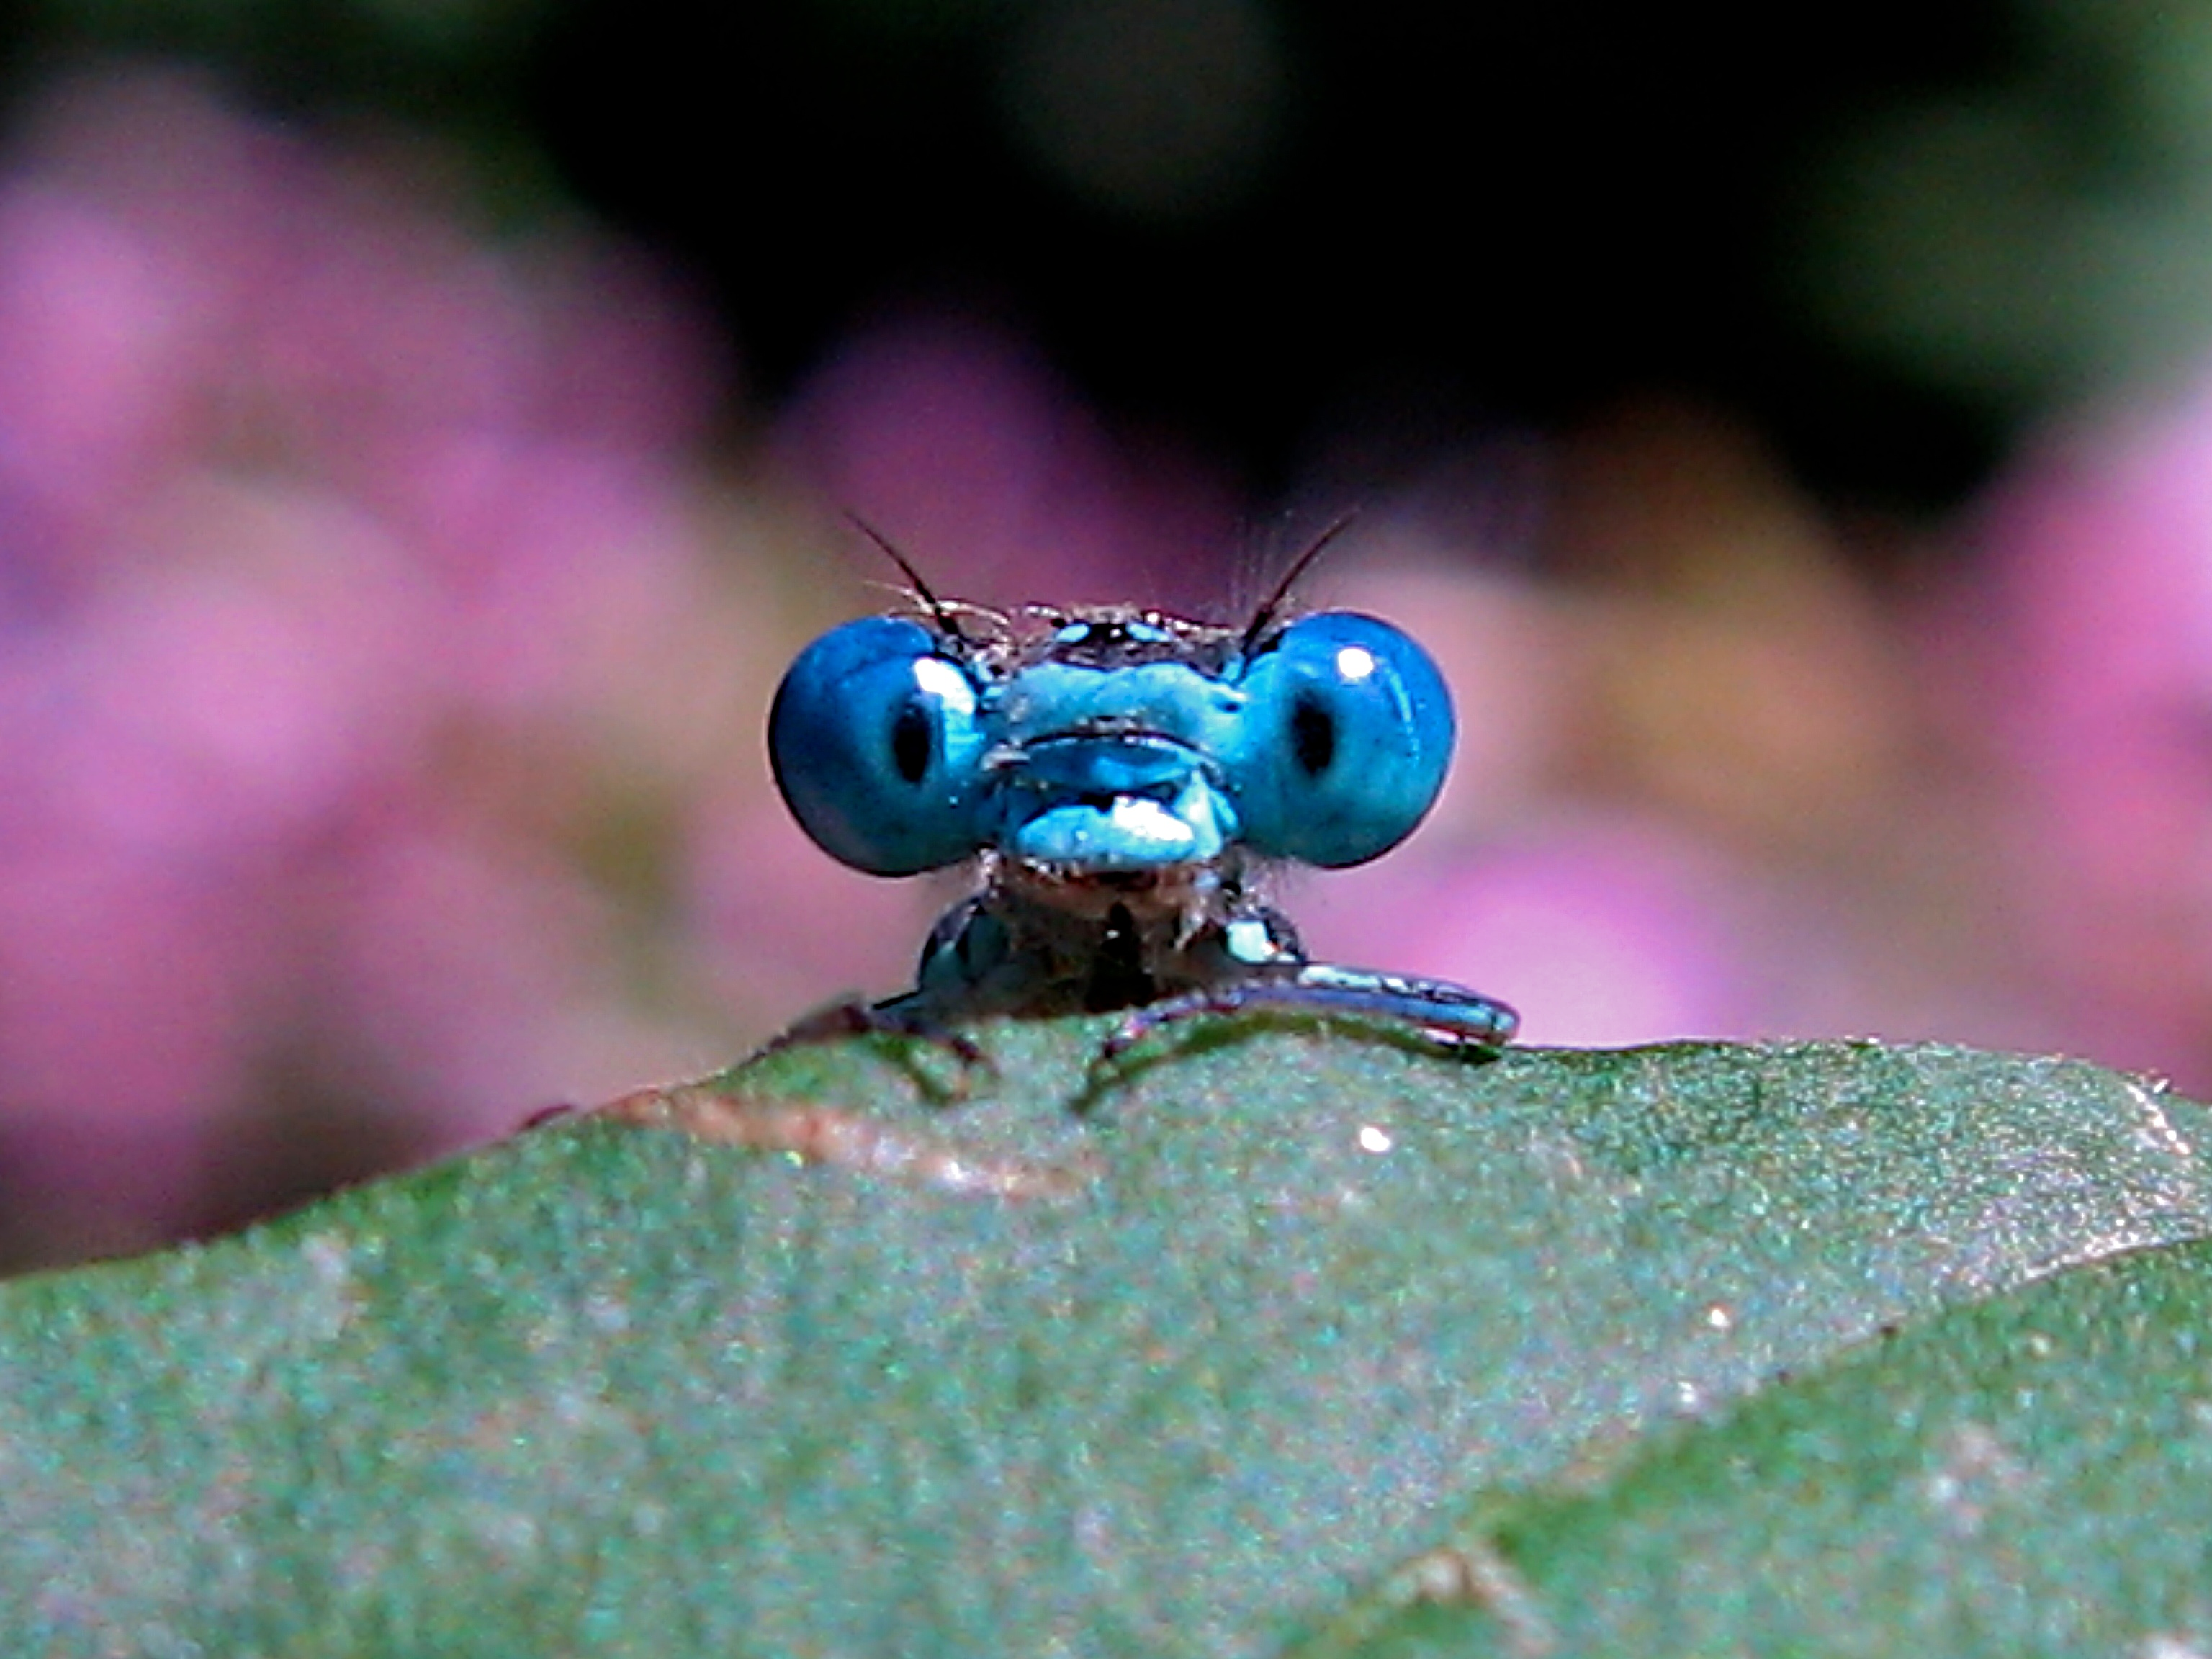 file:timitalia - dragonfly (by) - wikimedia commons